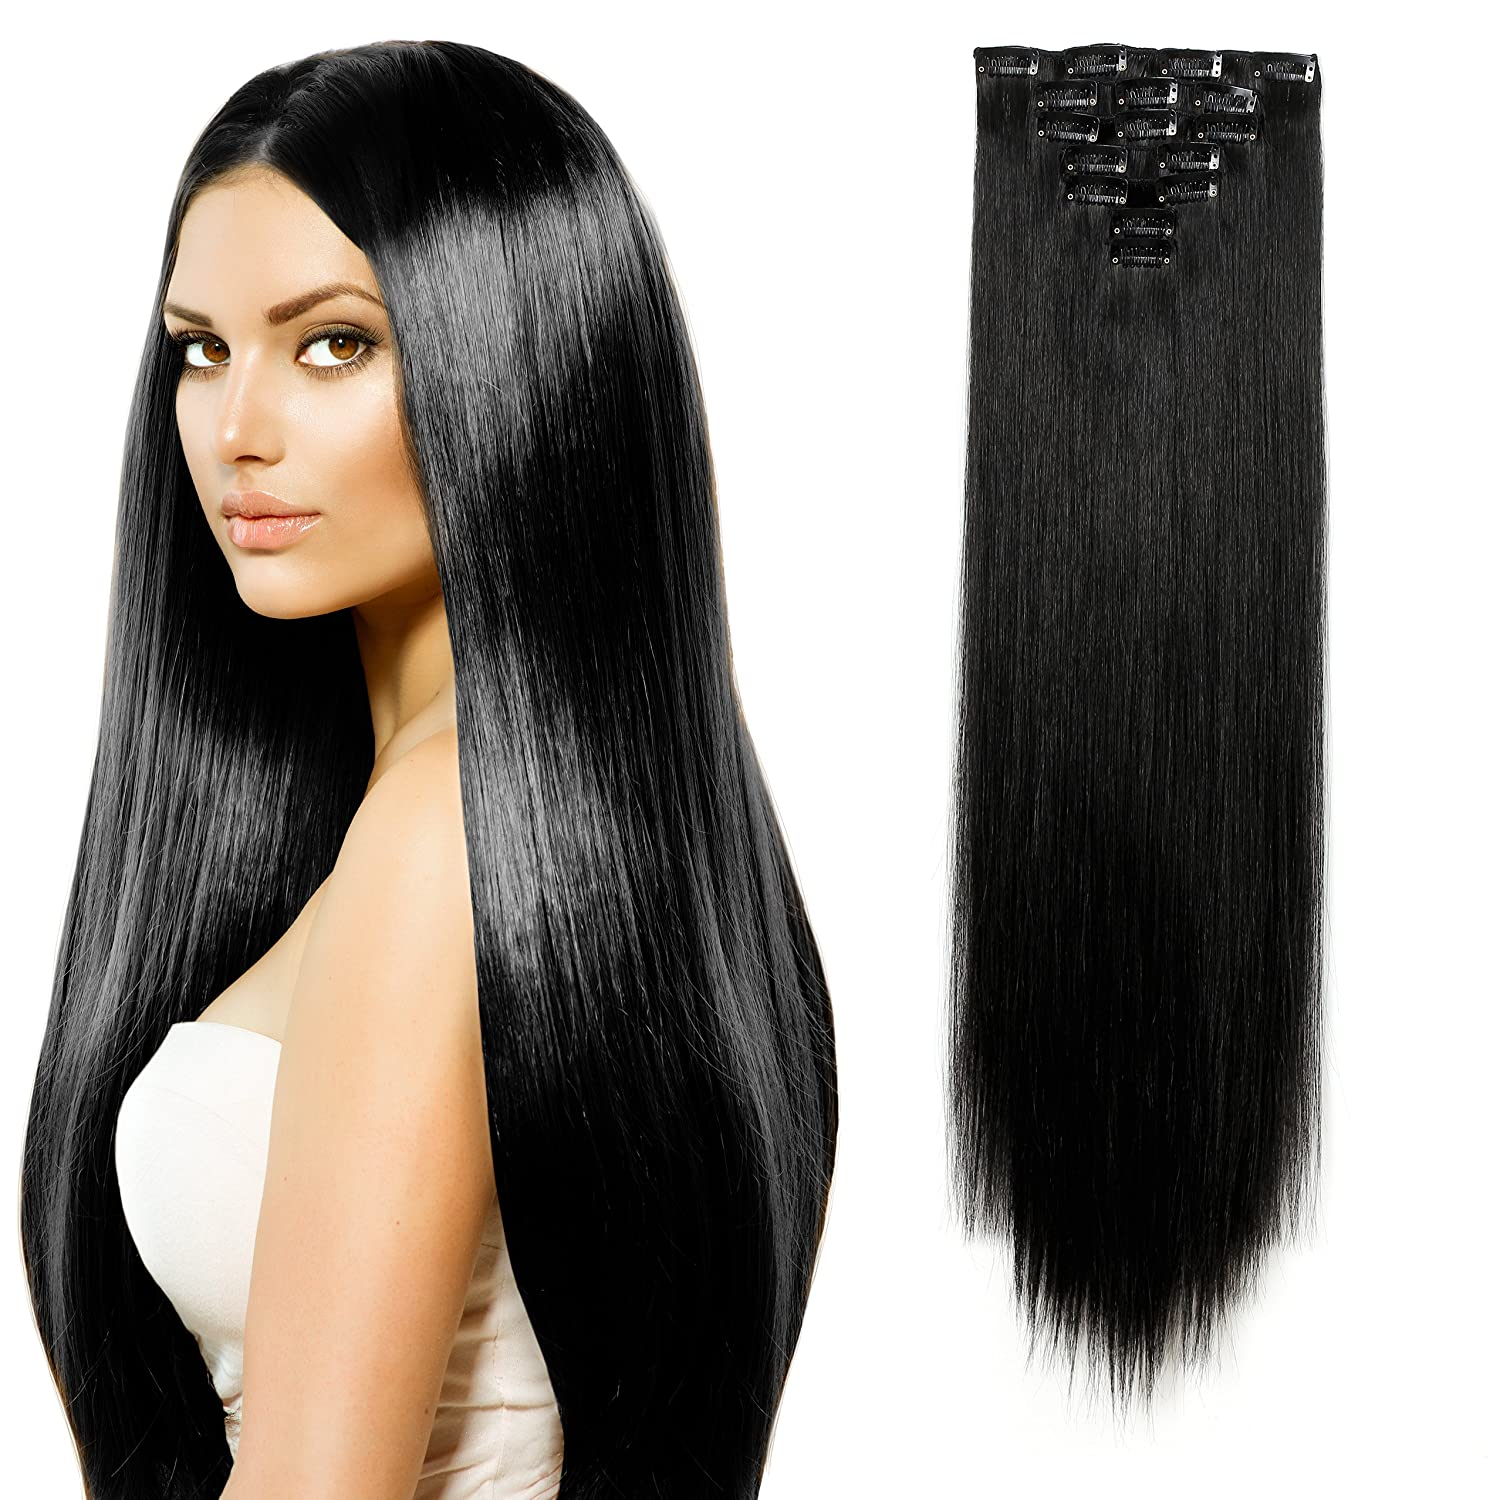 Amazon onedor 24 straight full head kanekalon futura heat amazon onedor 24 straight full head kanekalon futura heat resistance hair extensions clip onin hairpieces 7pcs 140g straight 1b off black pmusecretfo Images